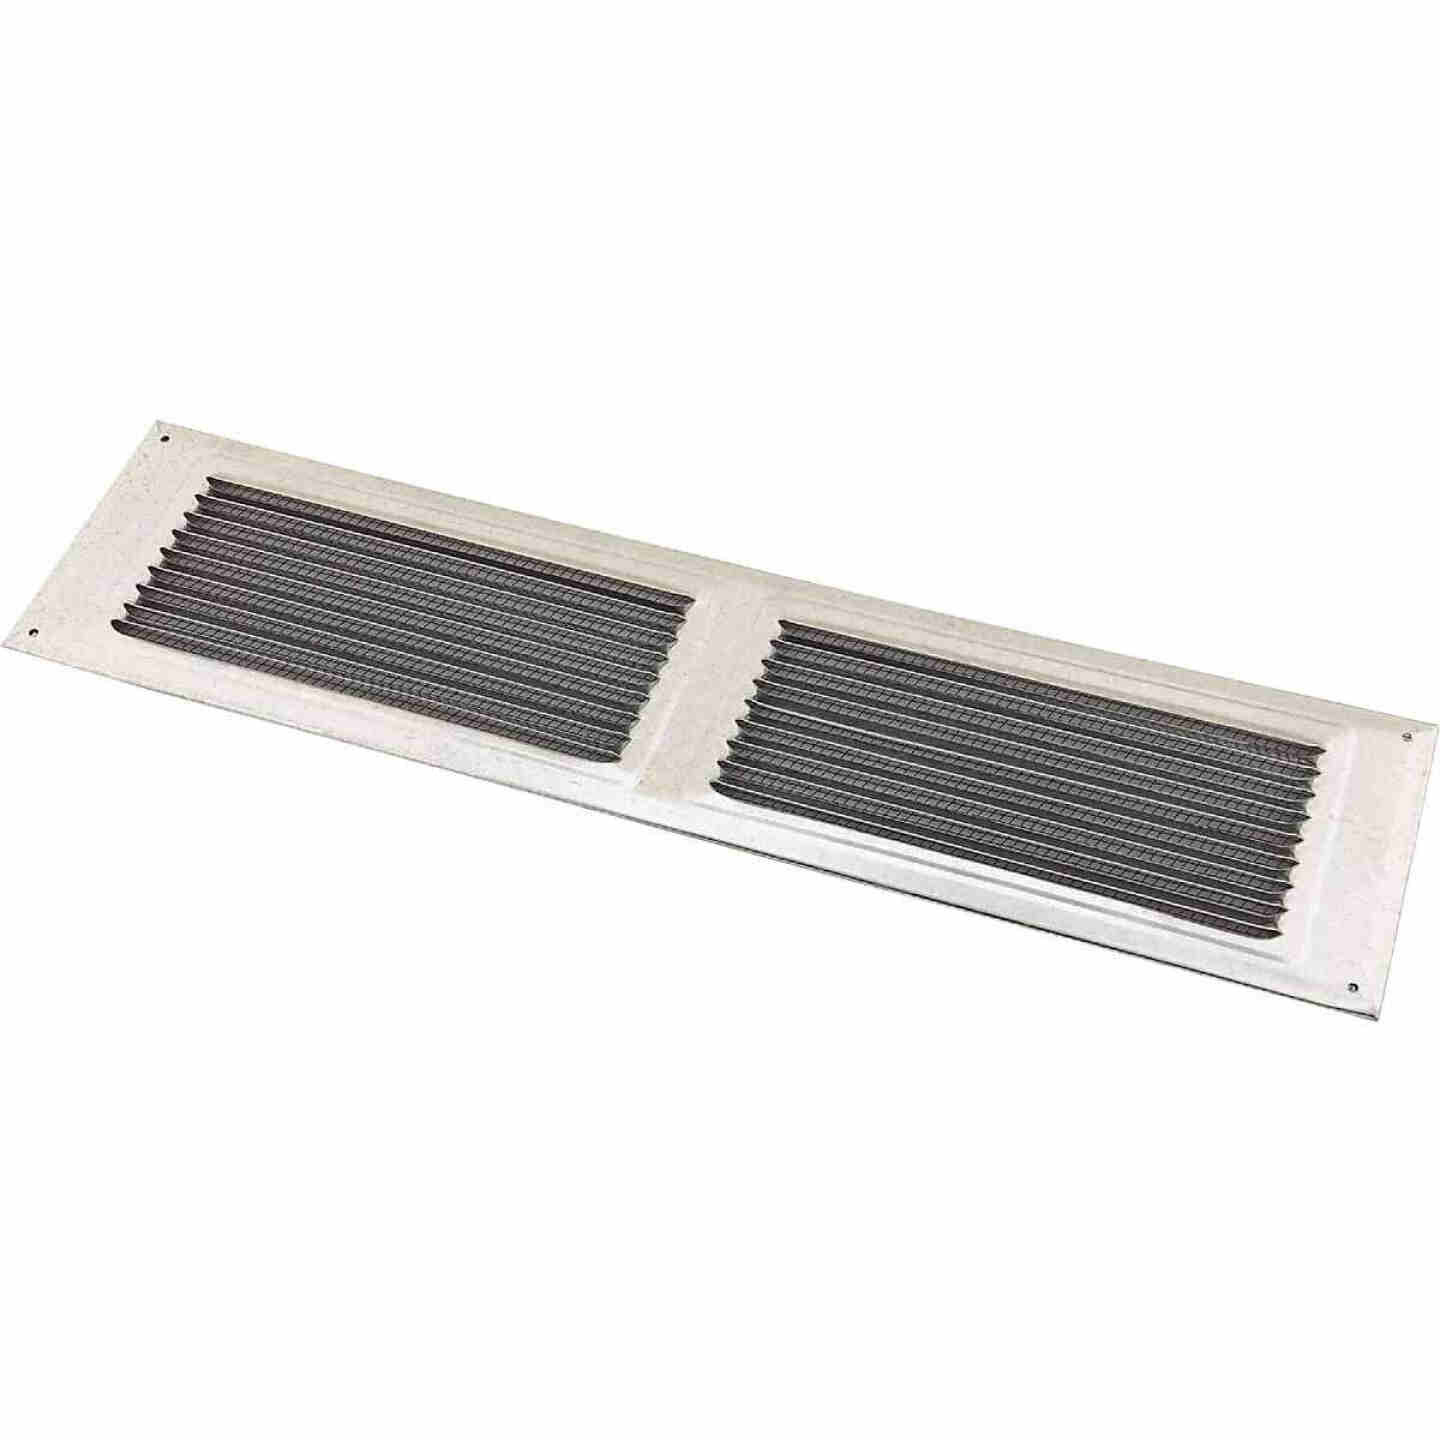 NorWesco 16 In. x 4 In. Galvanized Soffit Ventilator Image 1